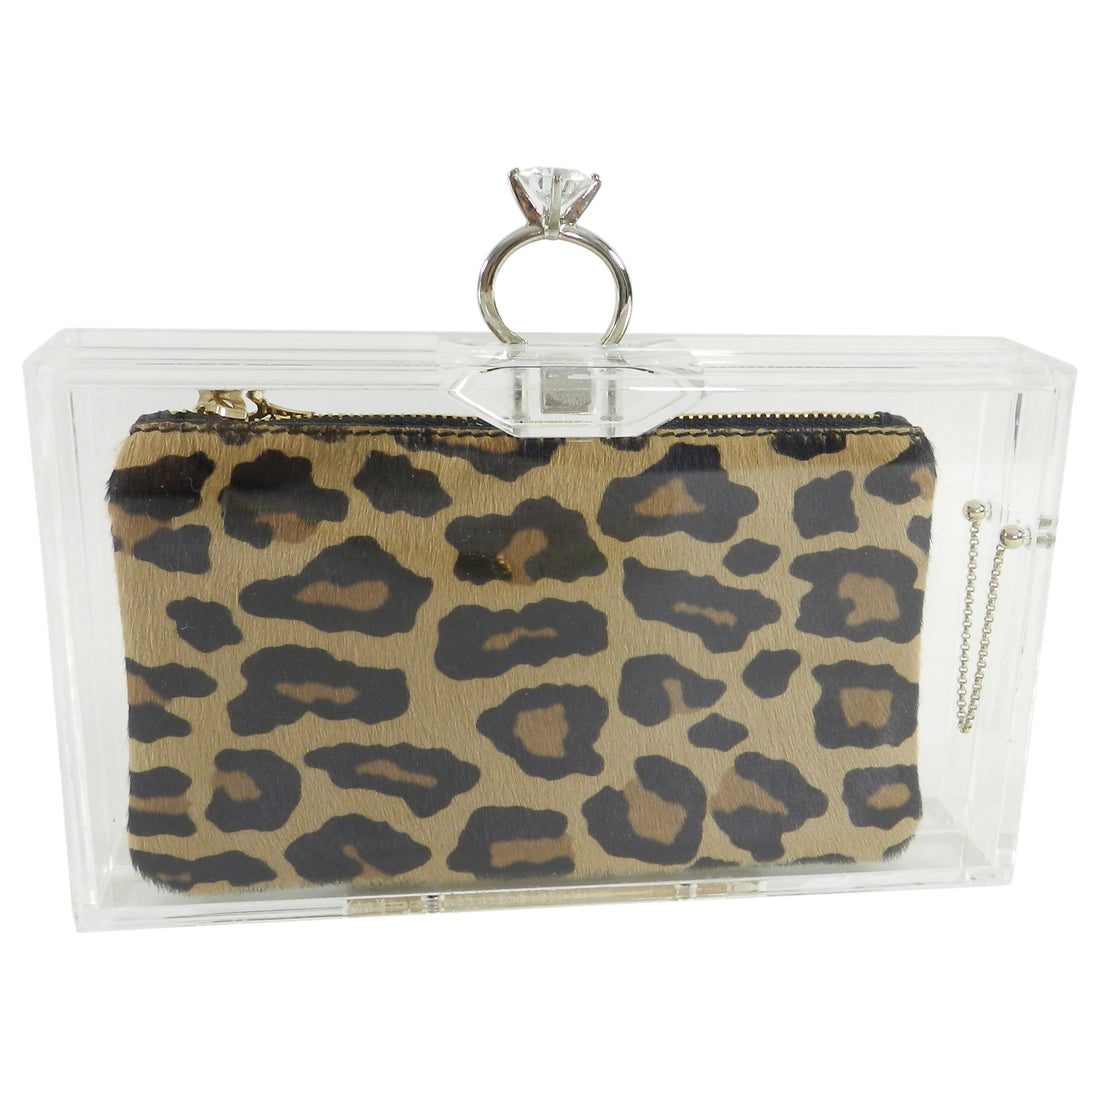 Charlotte Olympia Marry Me Acrylic Clutch Bag